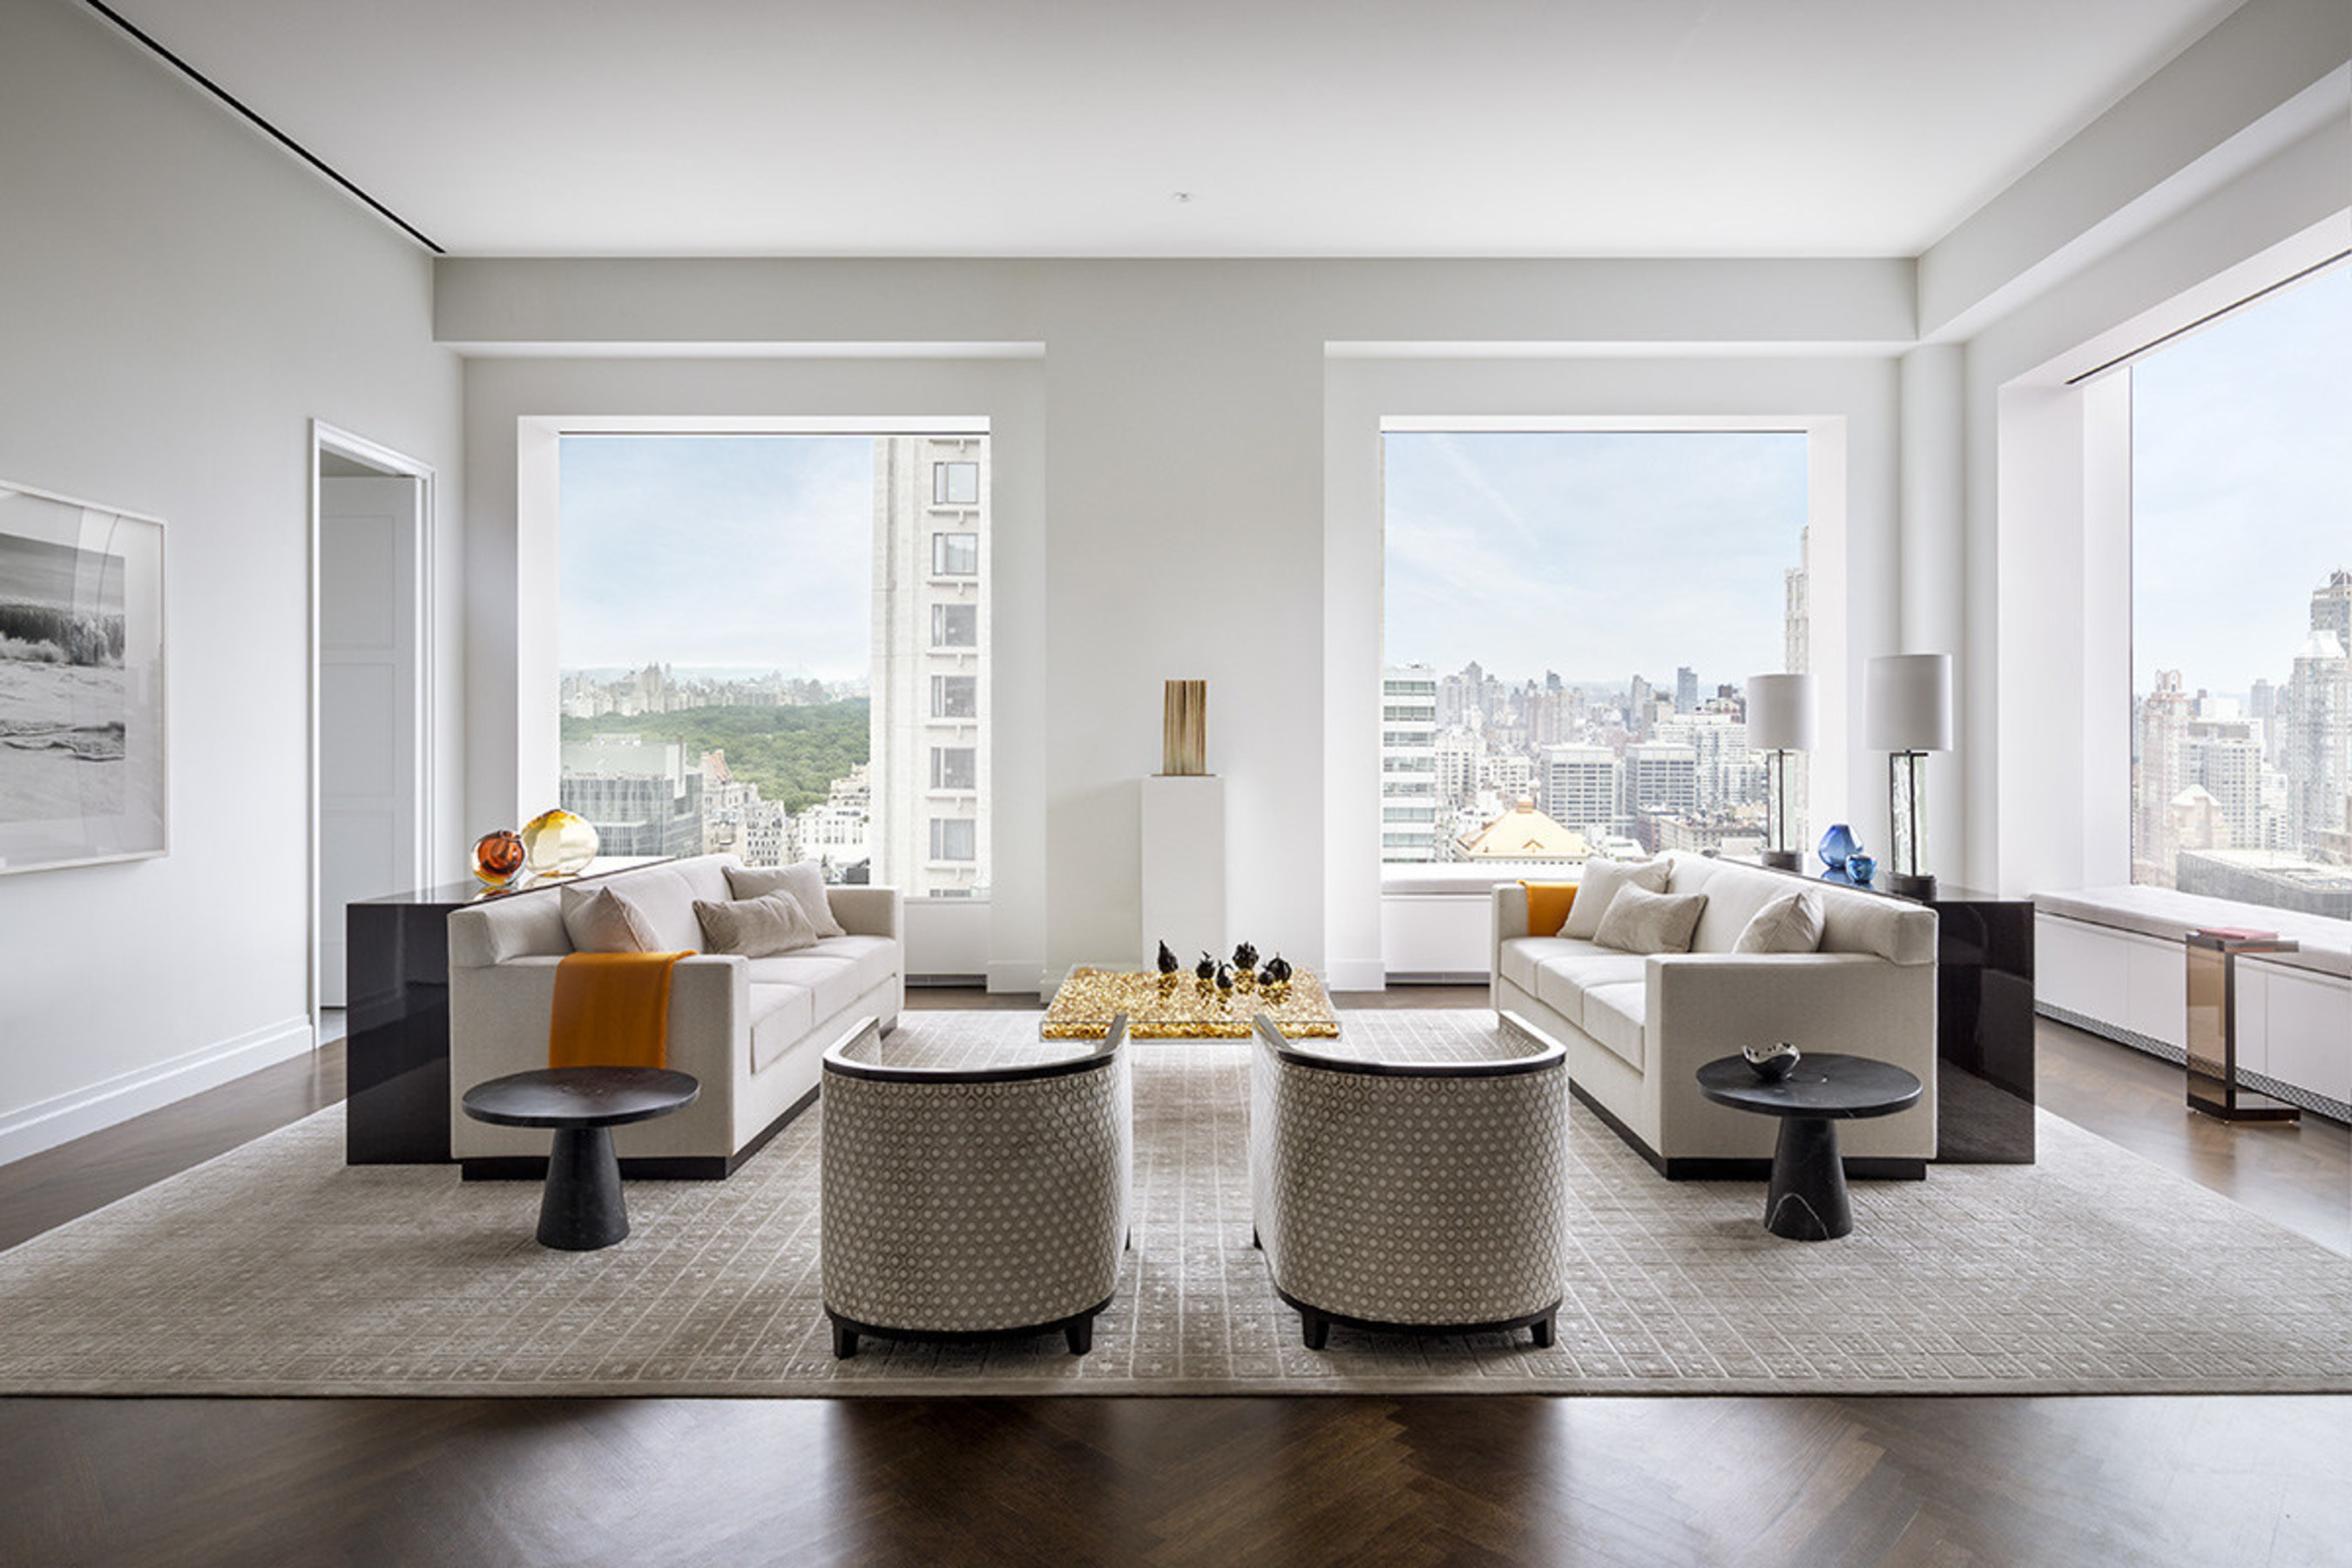 Living room in the model residence at 432 Park Avenue. Photo by Scott Frances for CIM Group & Macklowe Properties.